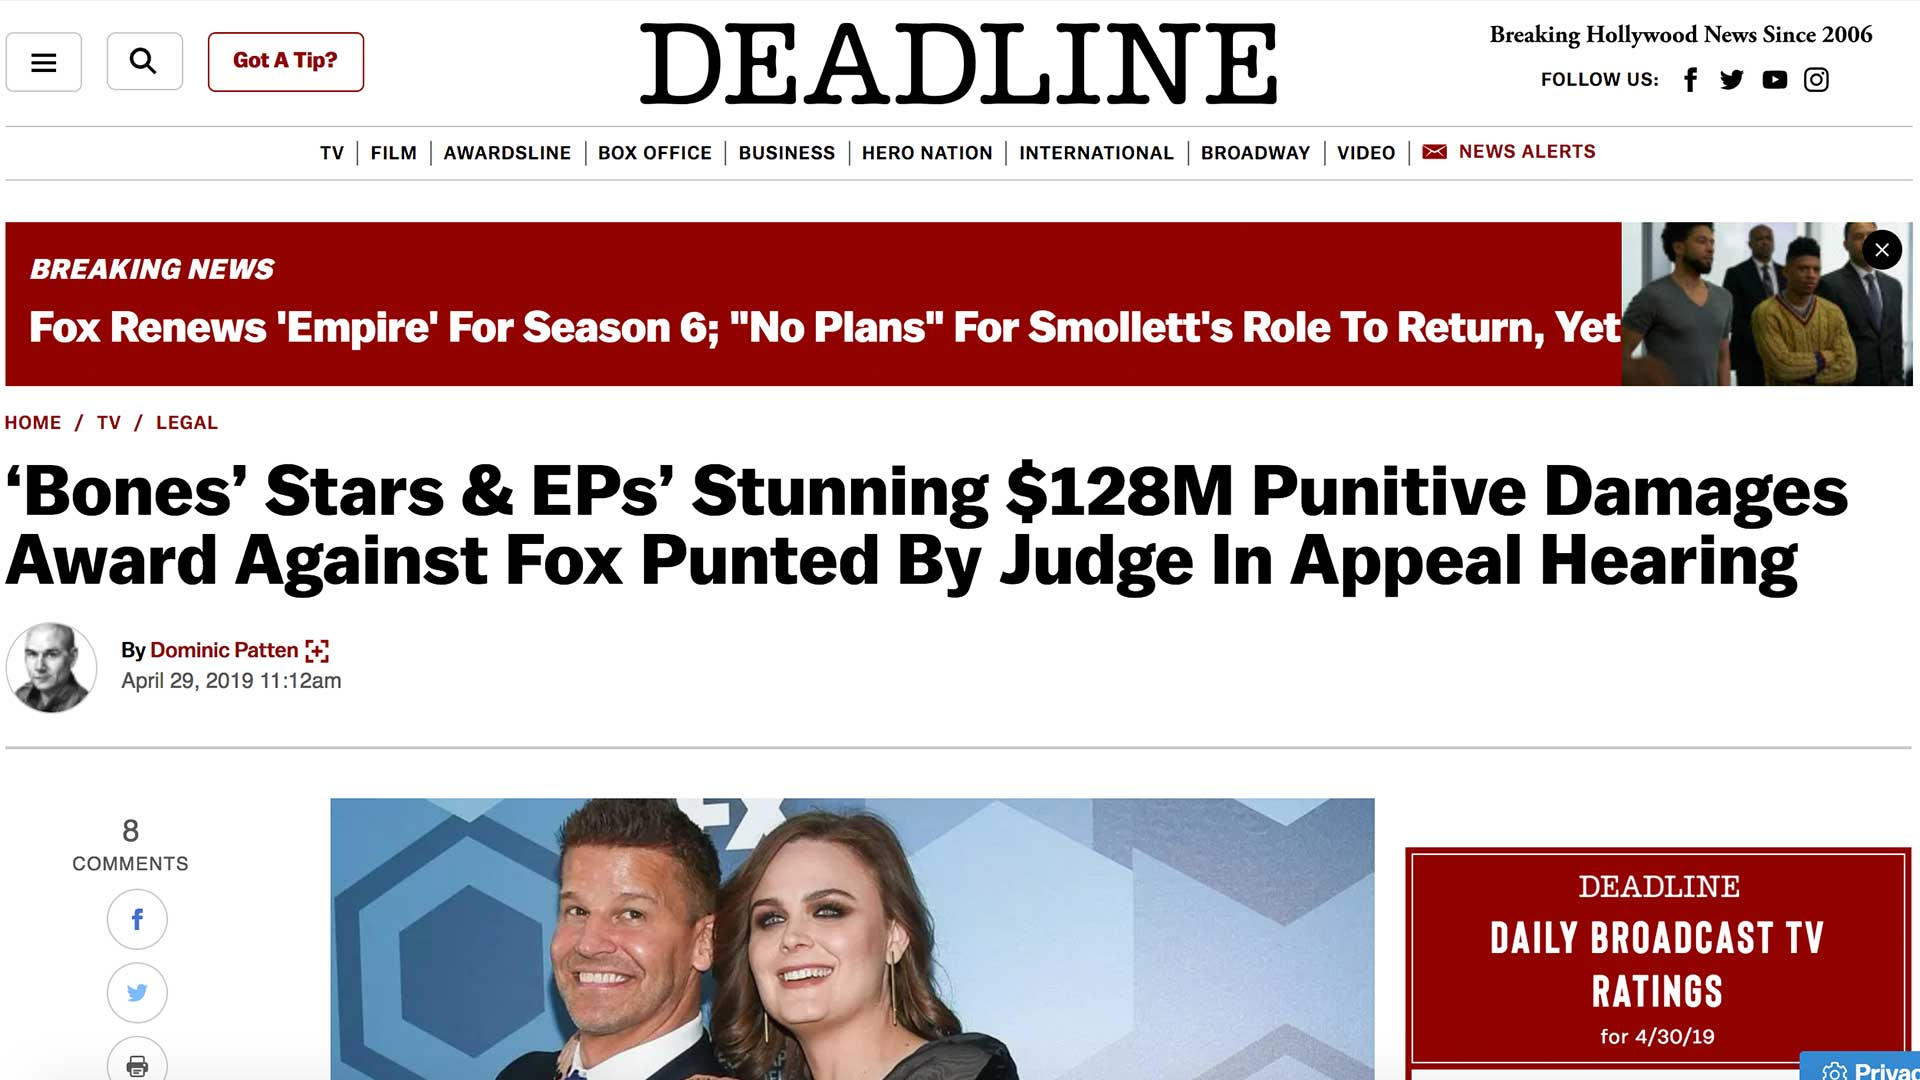 Fairness Rocks News 'Bones' Stars & EPs' Stunning $128M Punitive Damages Award Against Fox Punted By Judge In Appeal Hearing